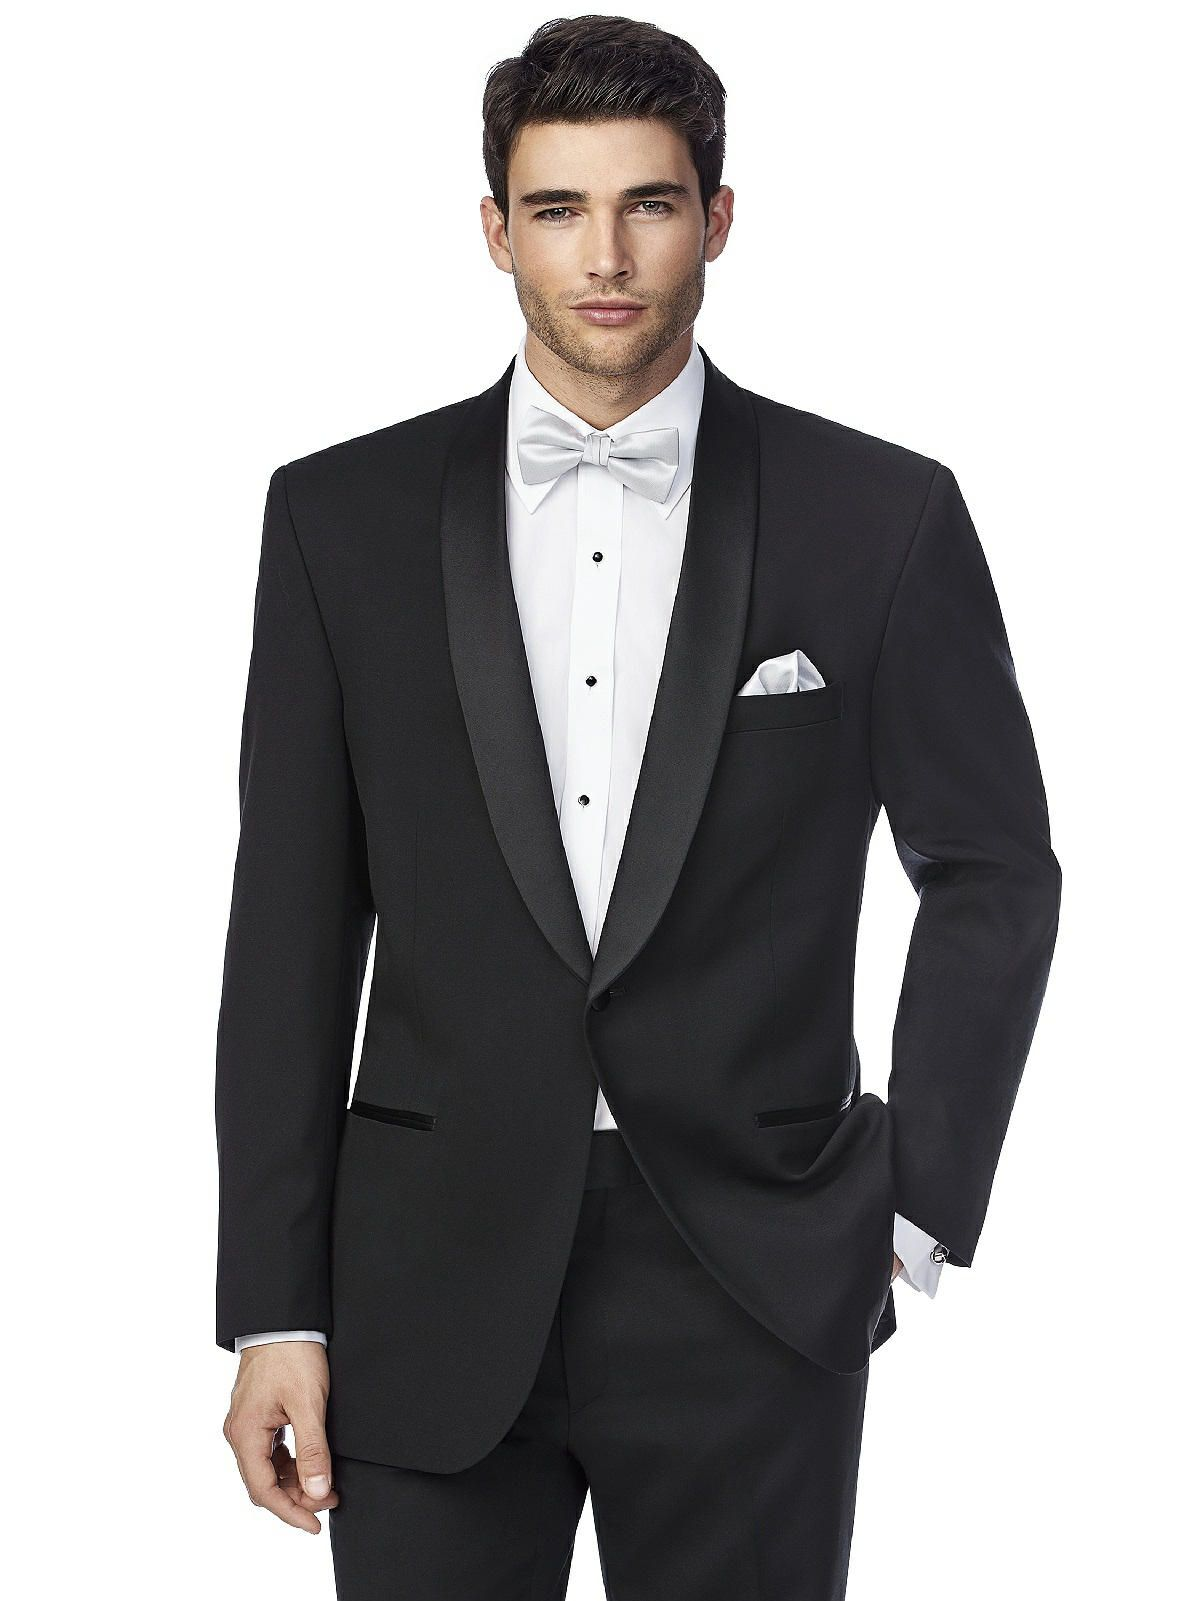 With Satin Shawl Lapels And Extra Fine Italian Wool This Wedding Tuxedo Is A Standout